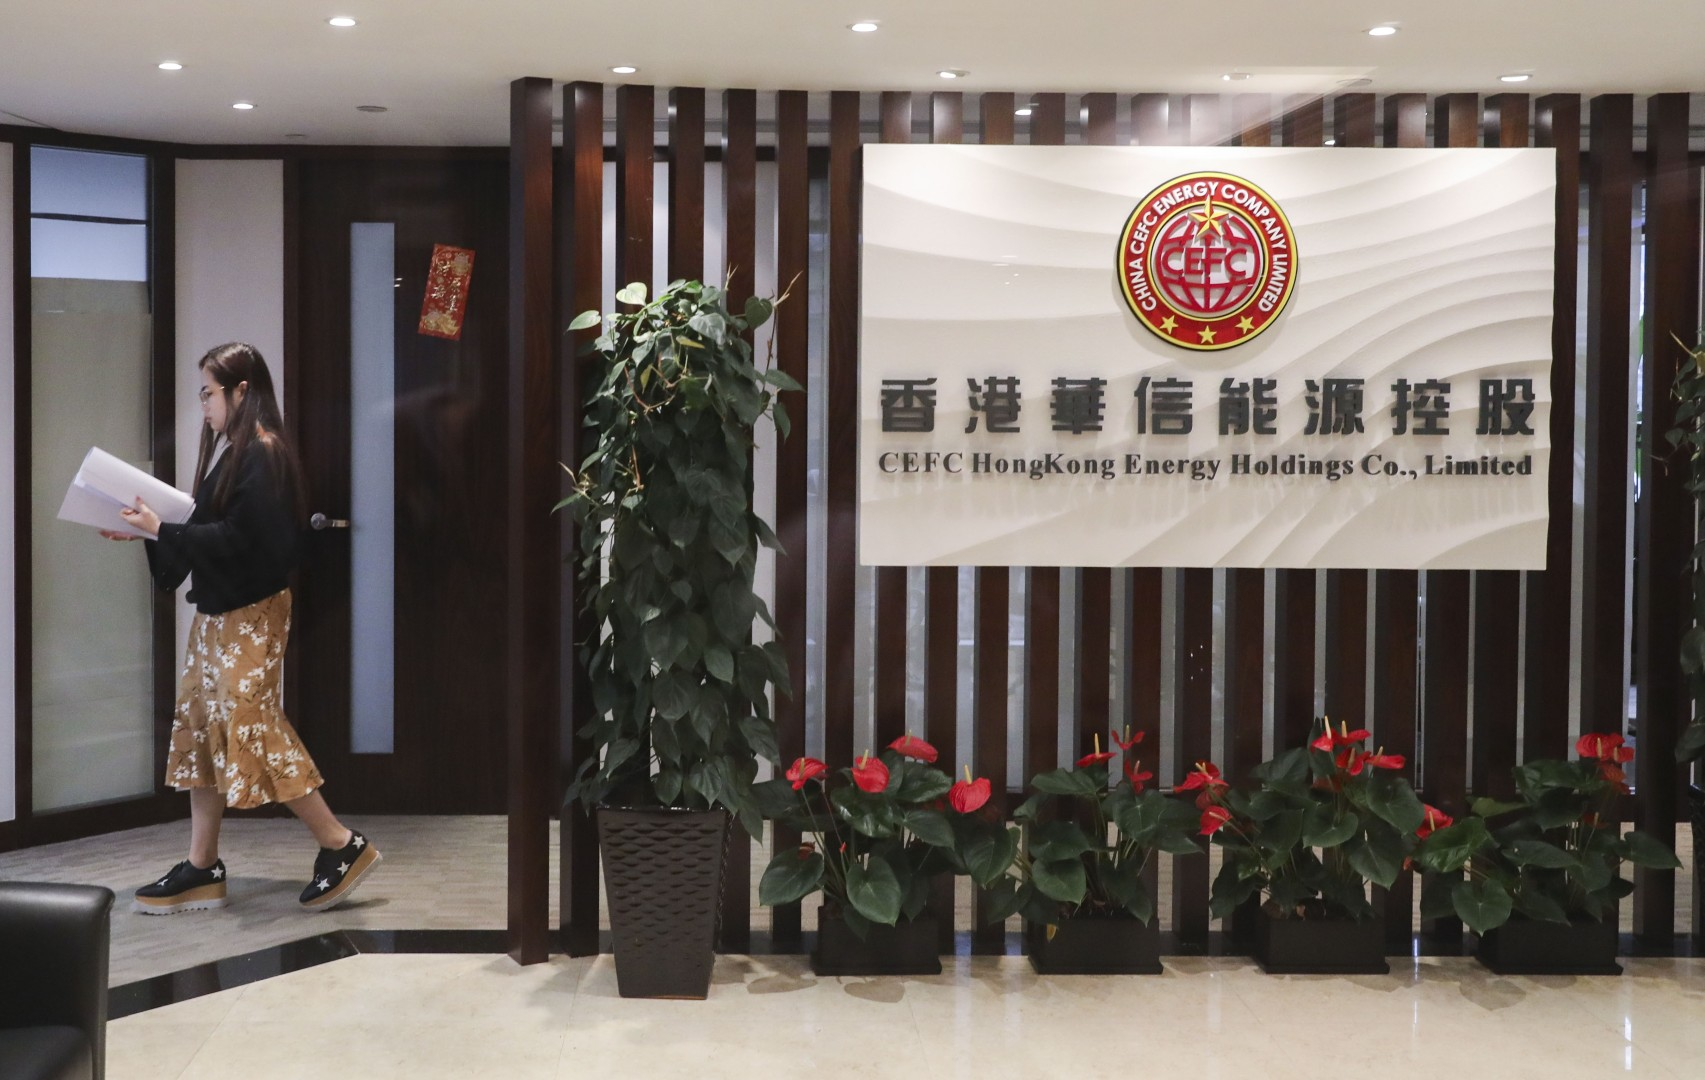 Boss vanished, bond plan aborted, assets frozen: China's private oil